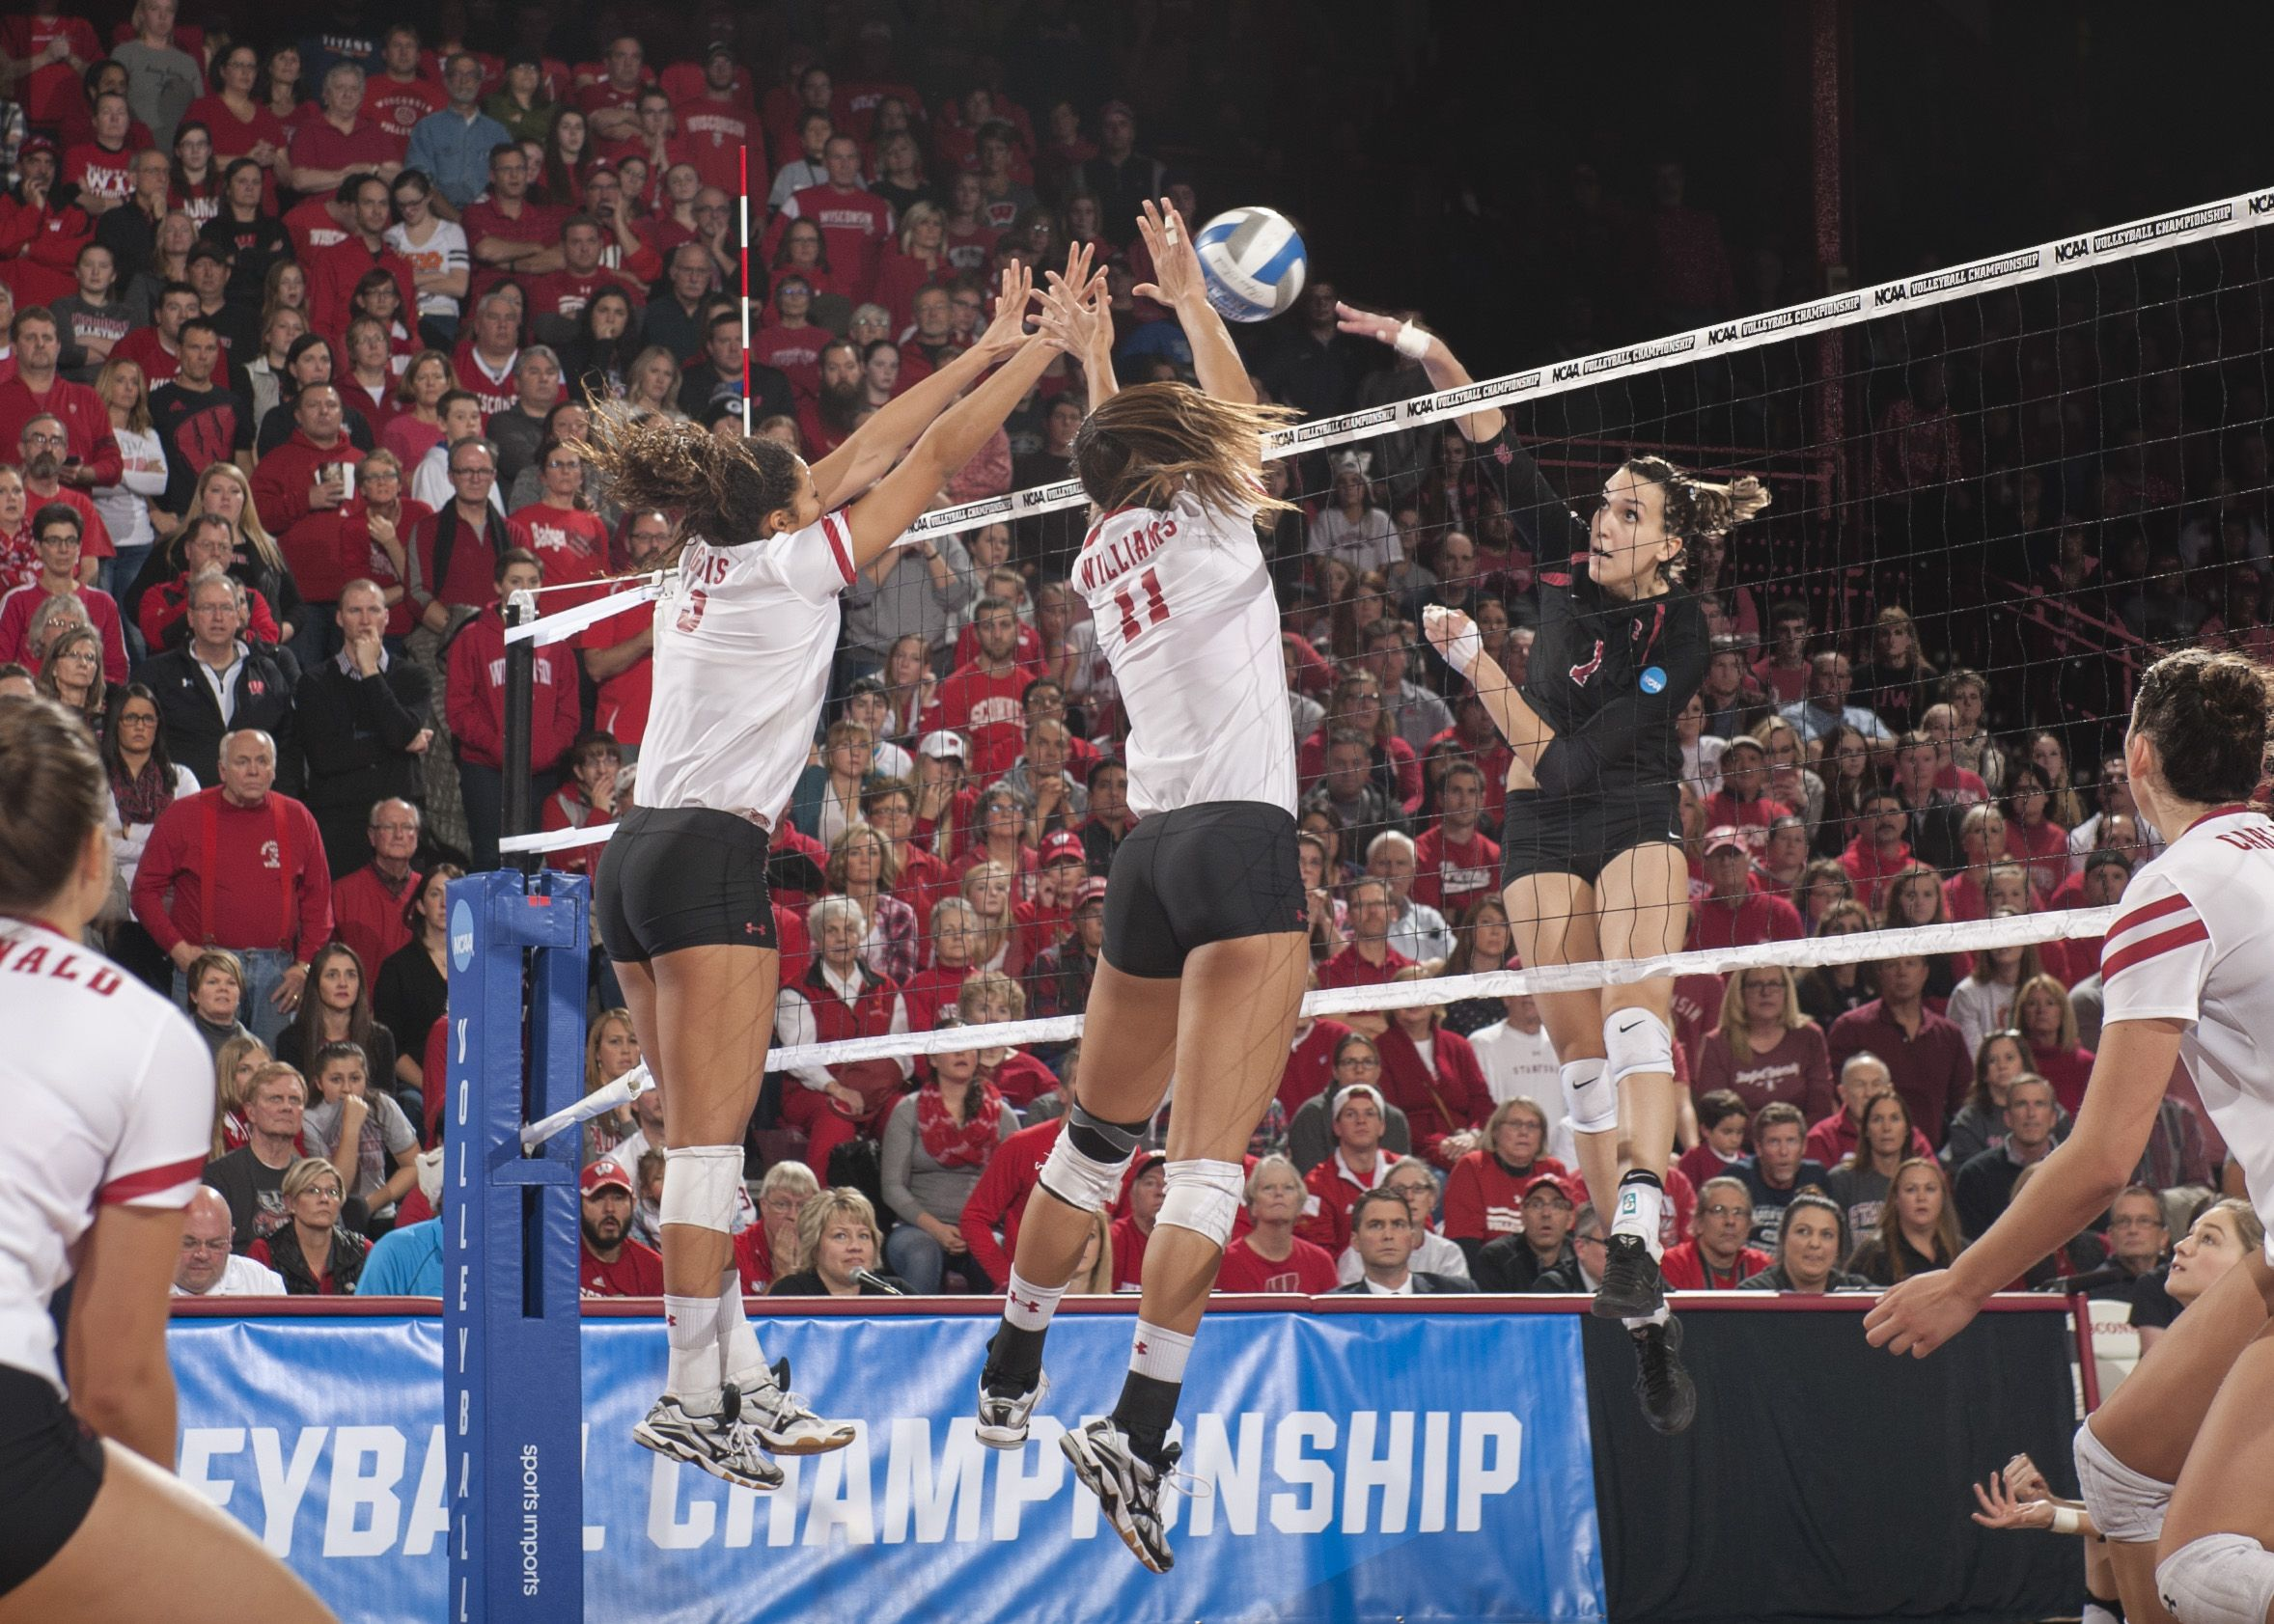 Hello Columbus Stanford Joins Nebraska Minnesota Texas In Ncaa Semis Stanford Volleyball Volleyball Pictures Female Volleyball Players